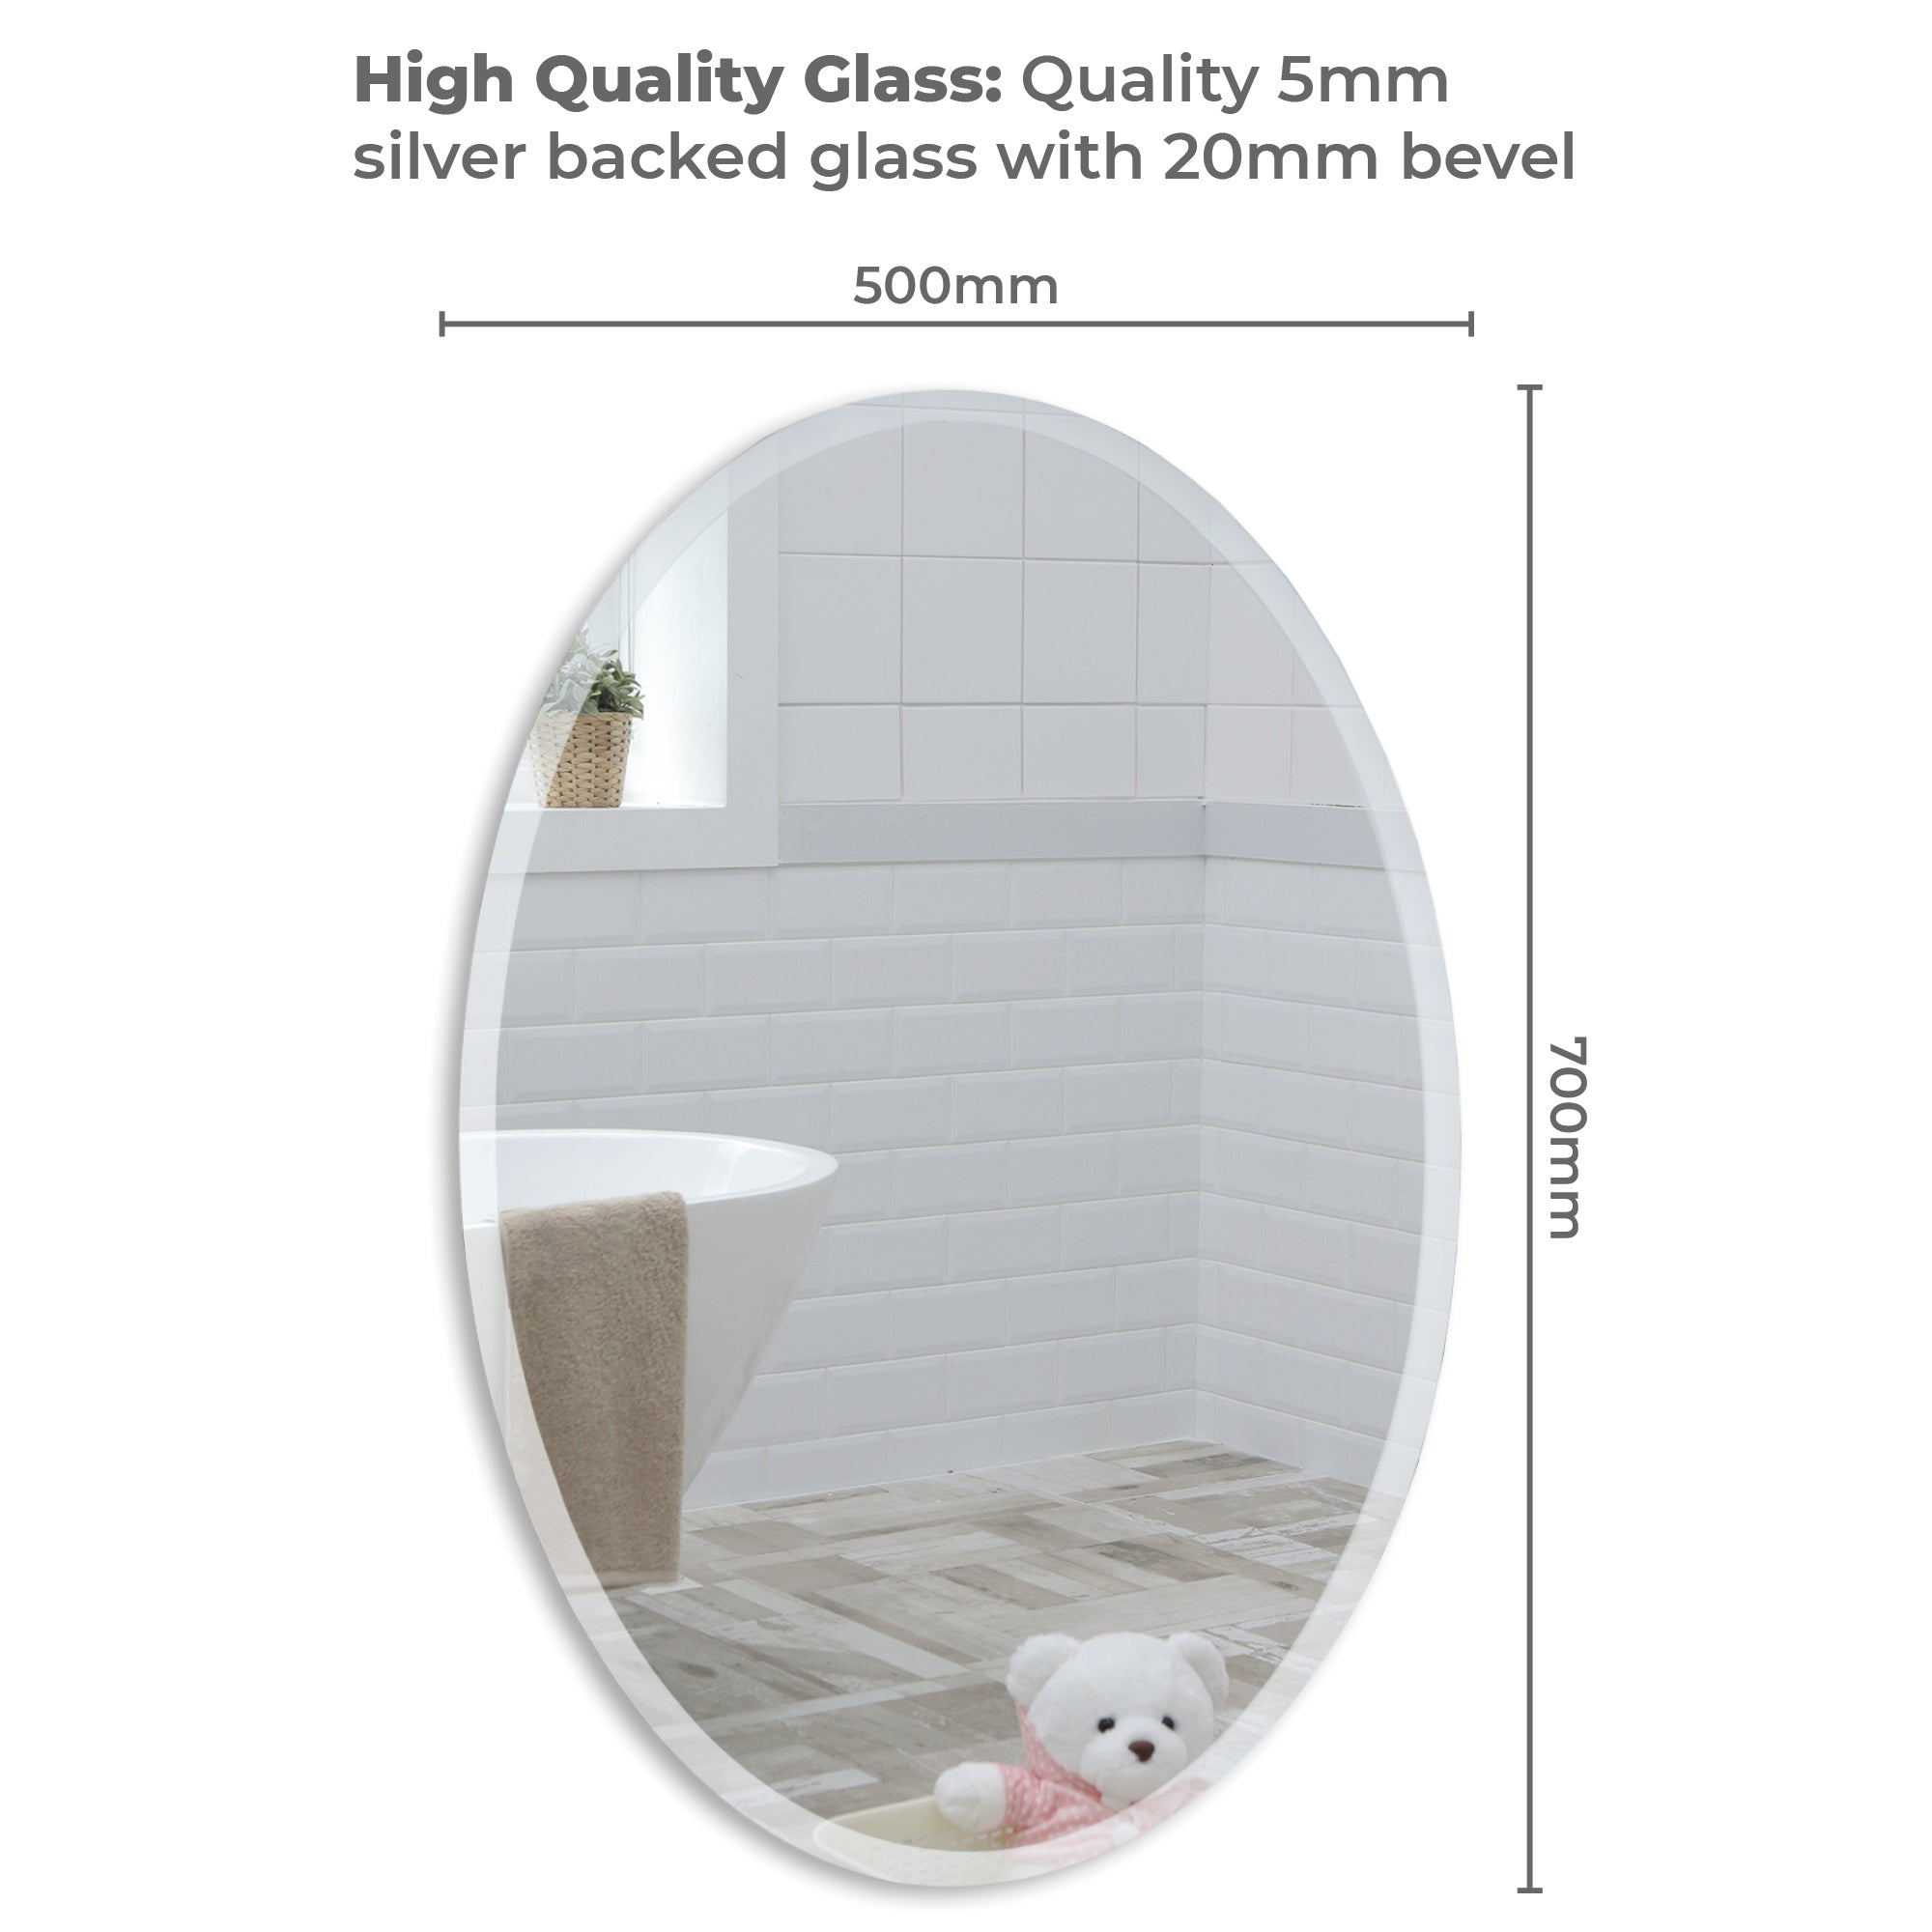 Modern Oval Bathroom Wall Mirror 2 Sizes 50Hx40Wcm and 70Hx50Wcm